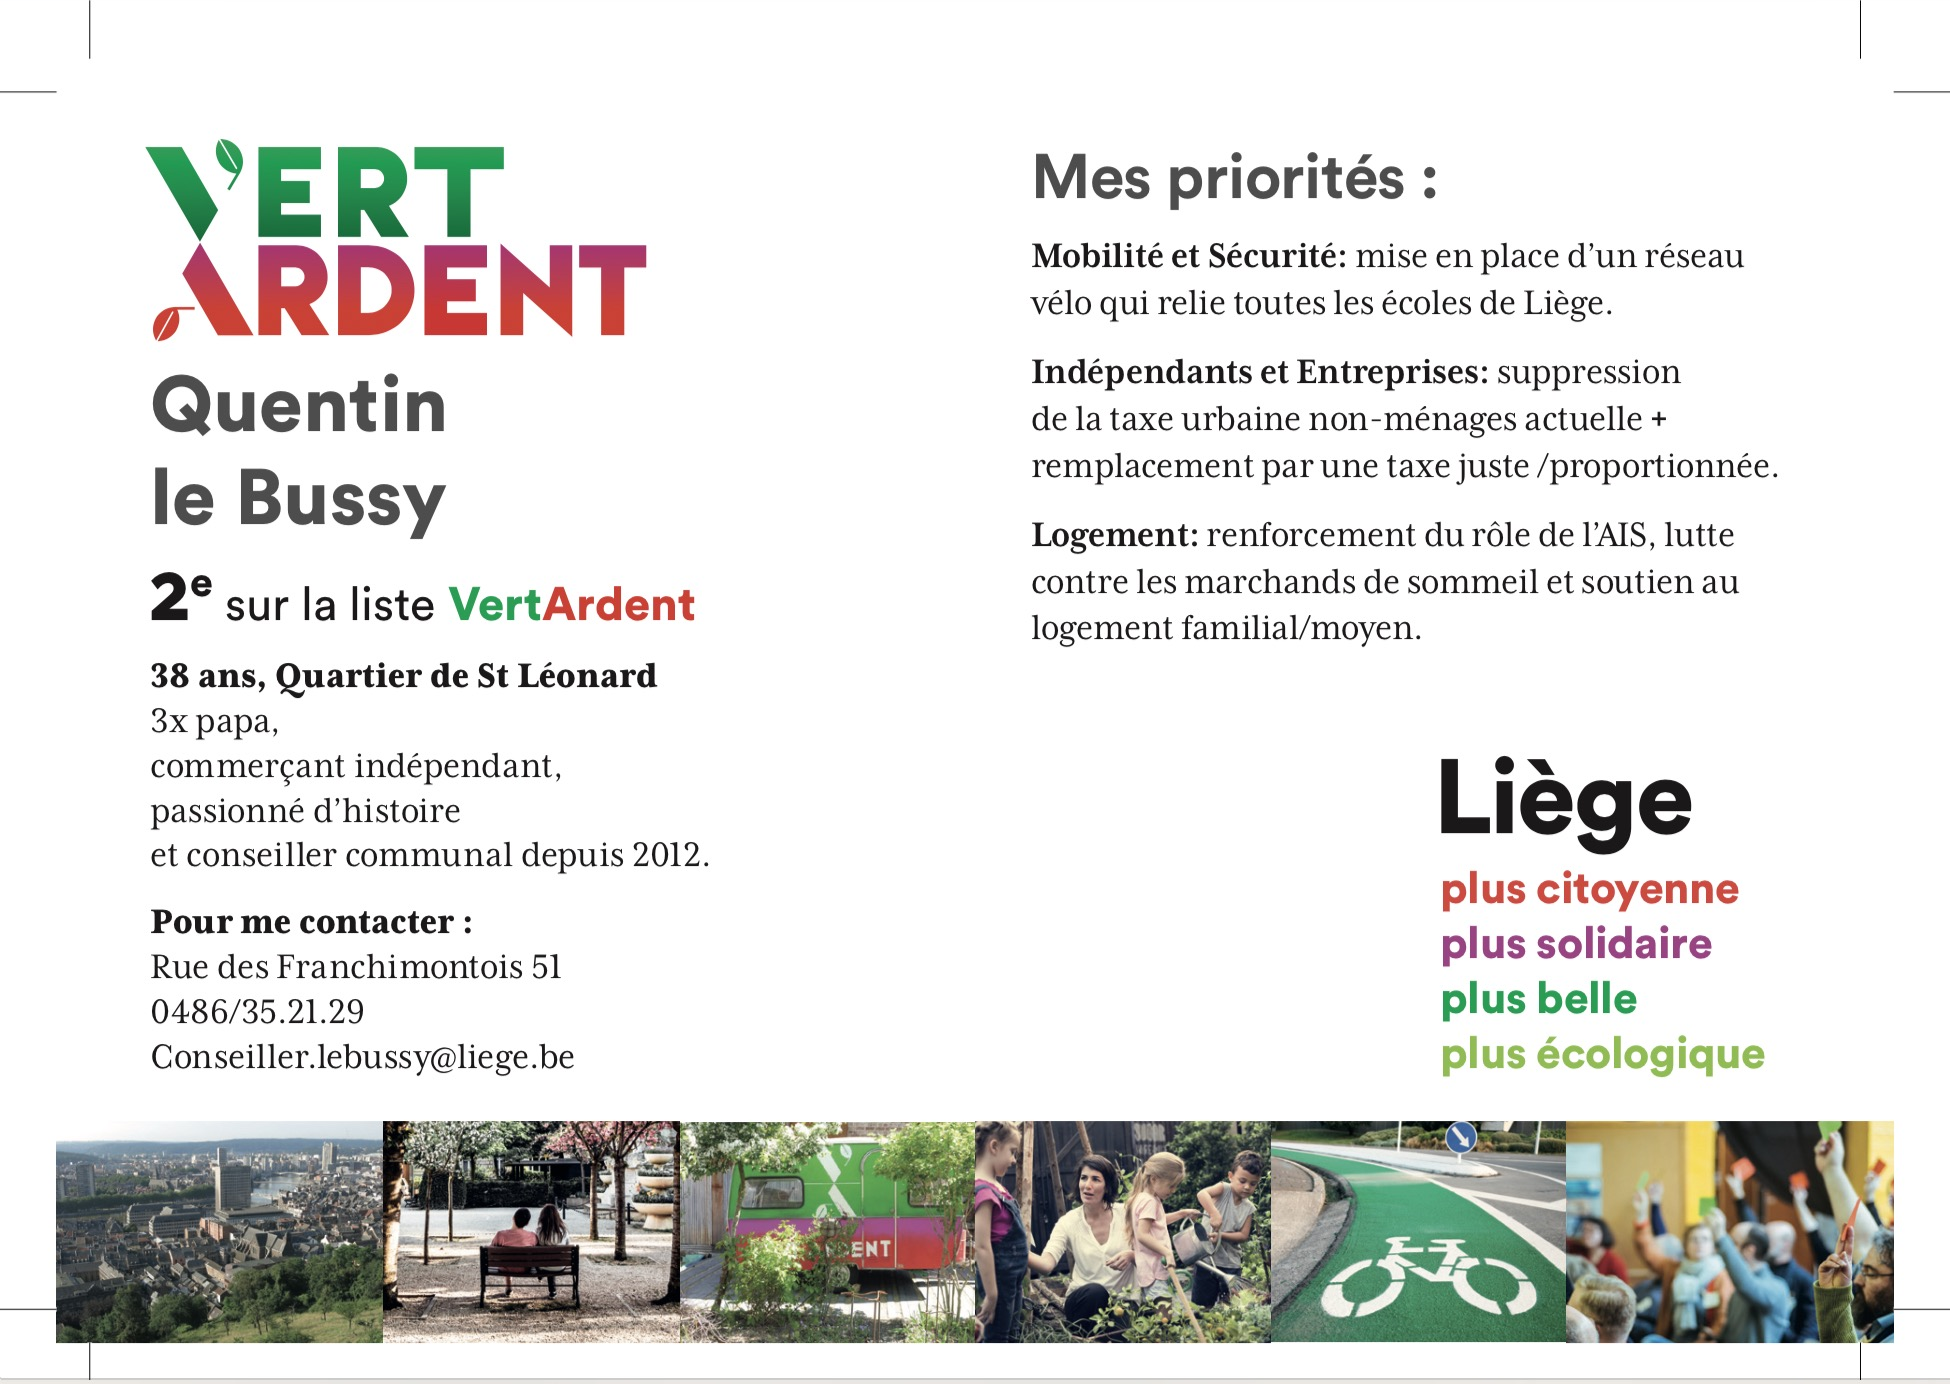 Quentin le Bussy - Candidat 2 - Vert Ardent - Liège 2018 - Passeport